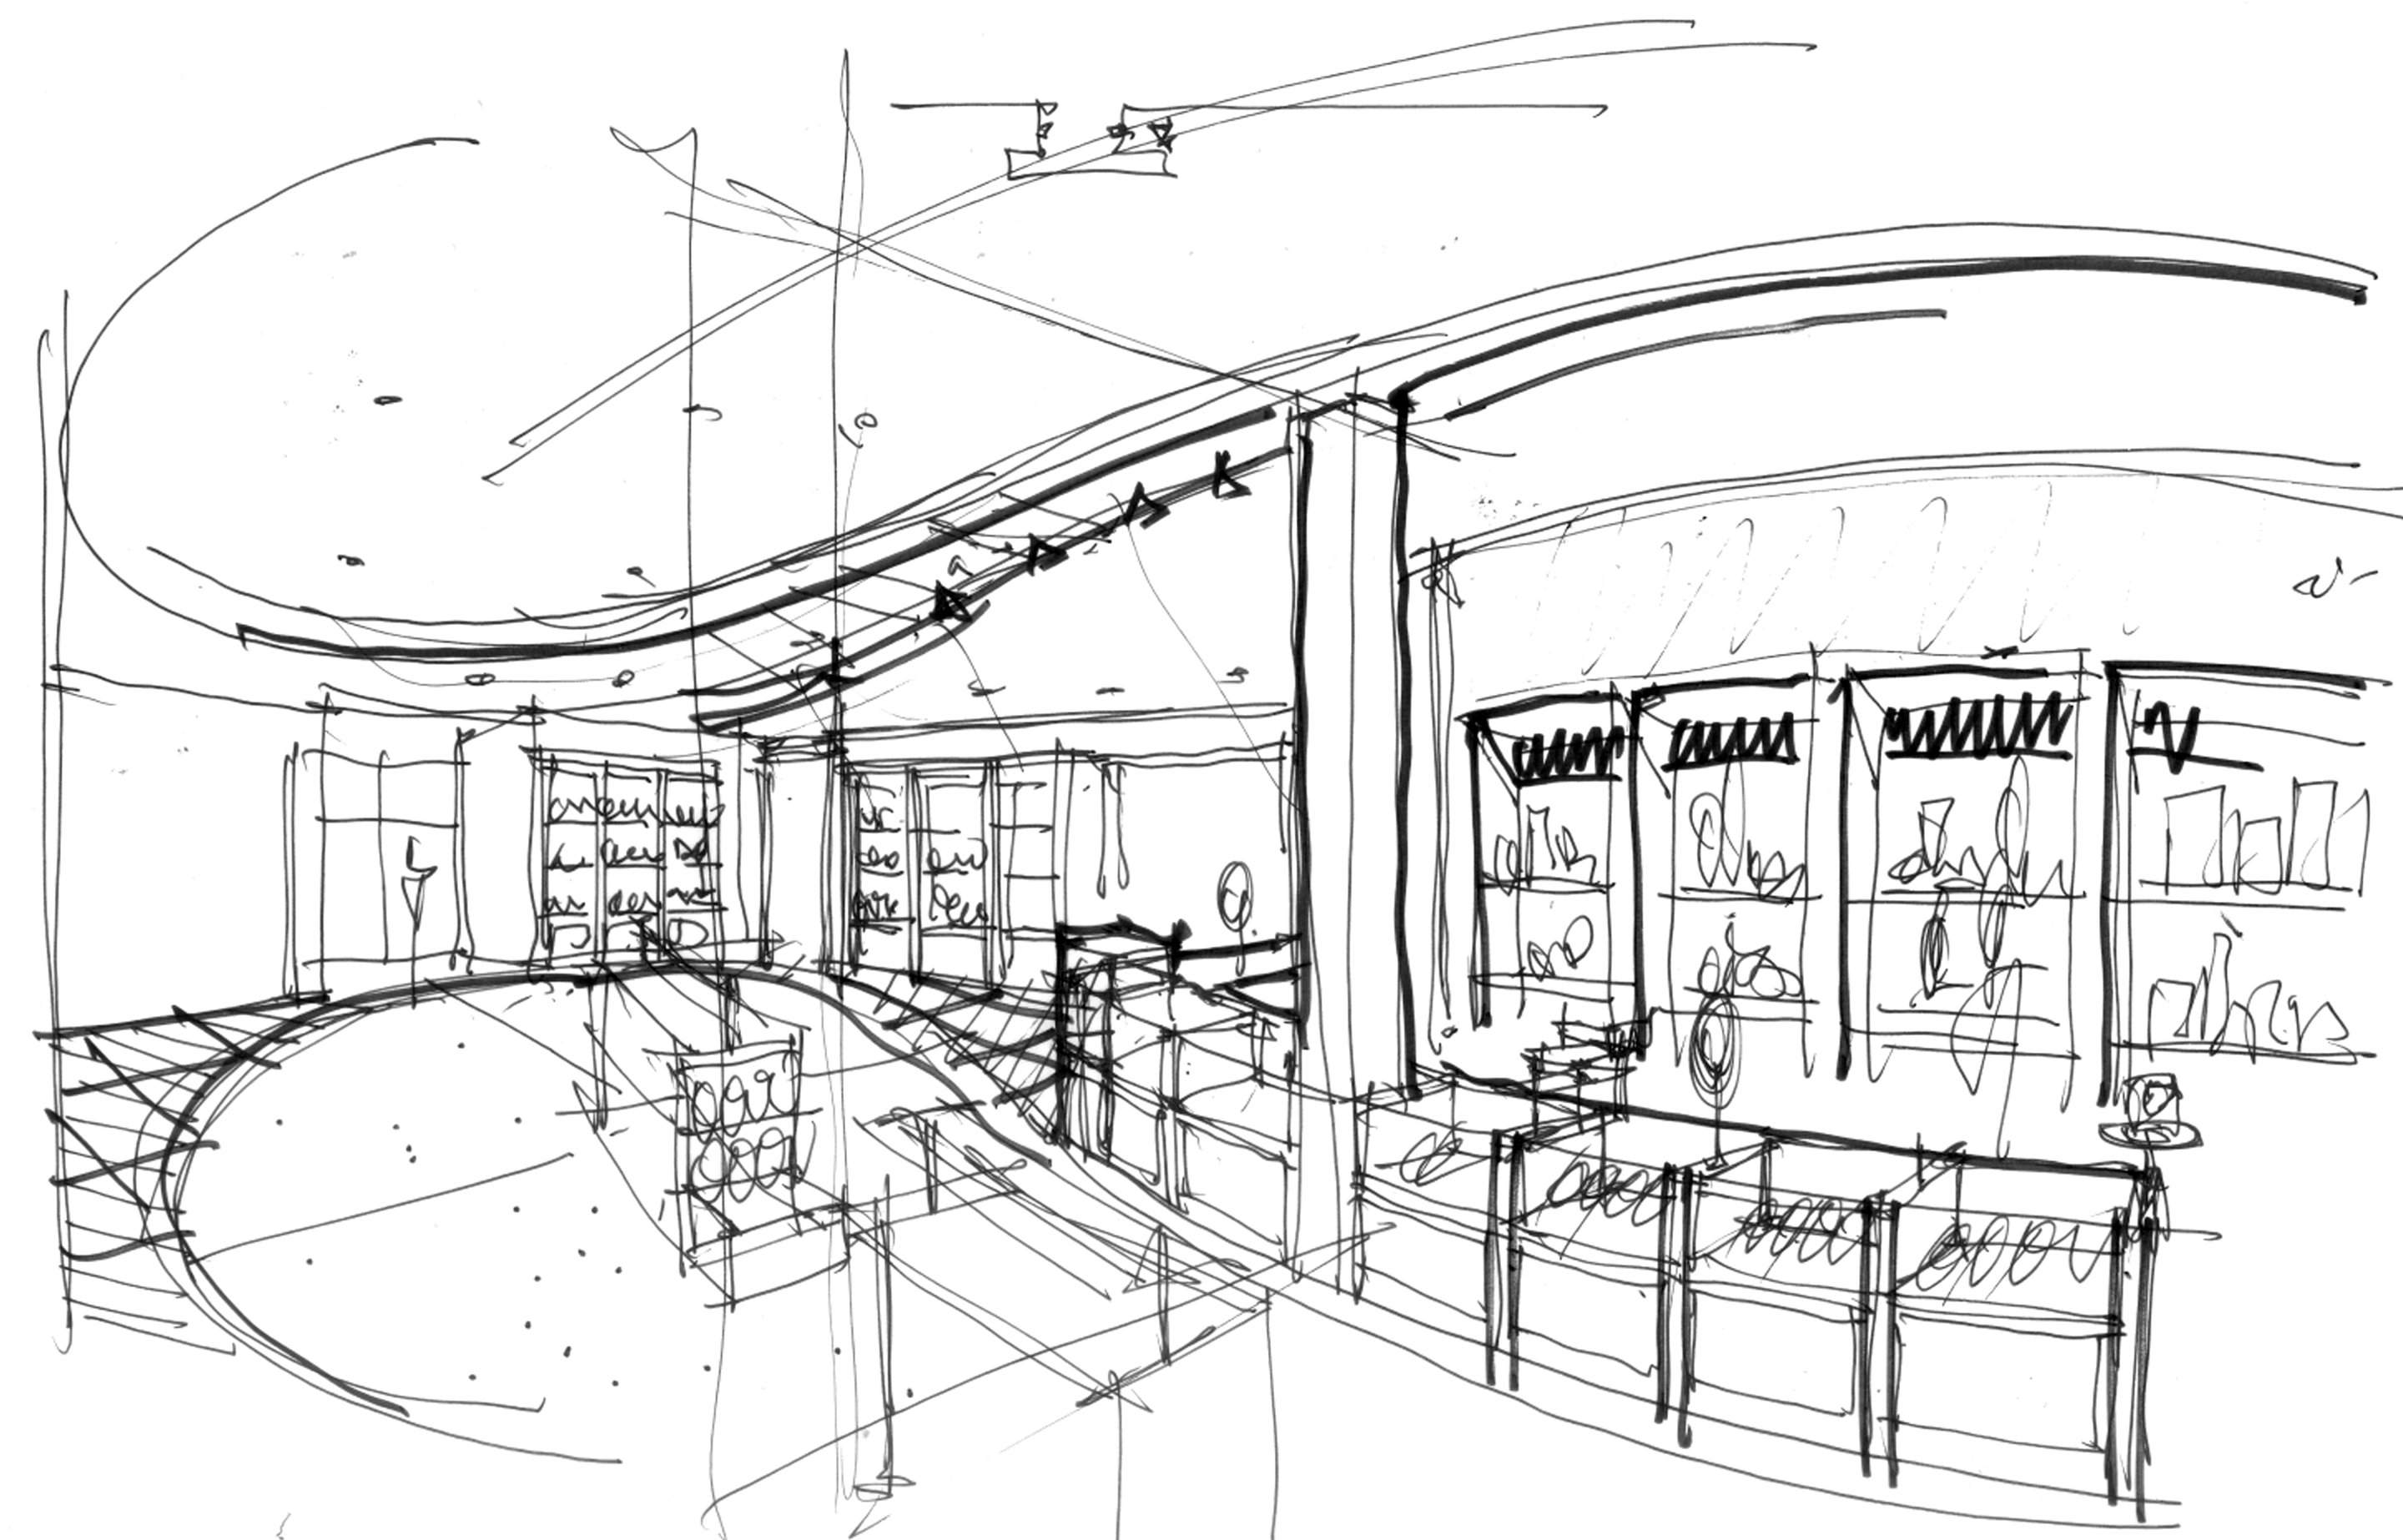 New Brooklyn Museum Shop Sketch